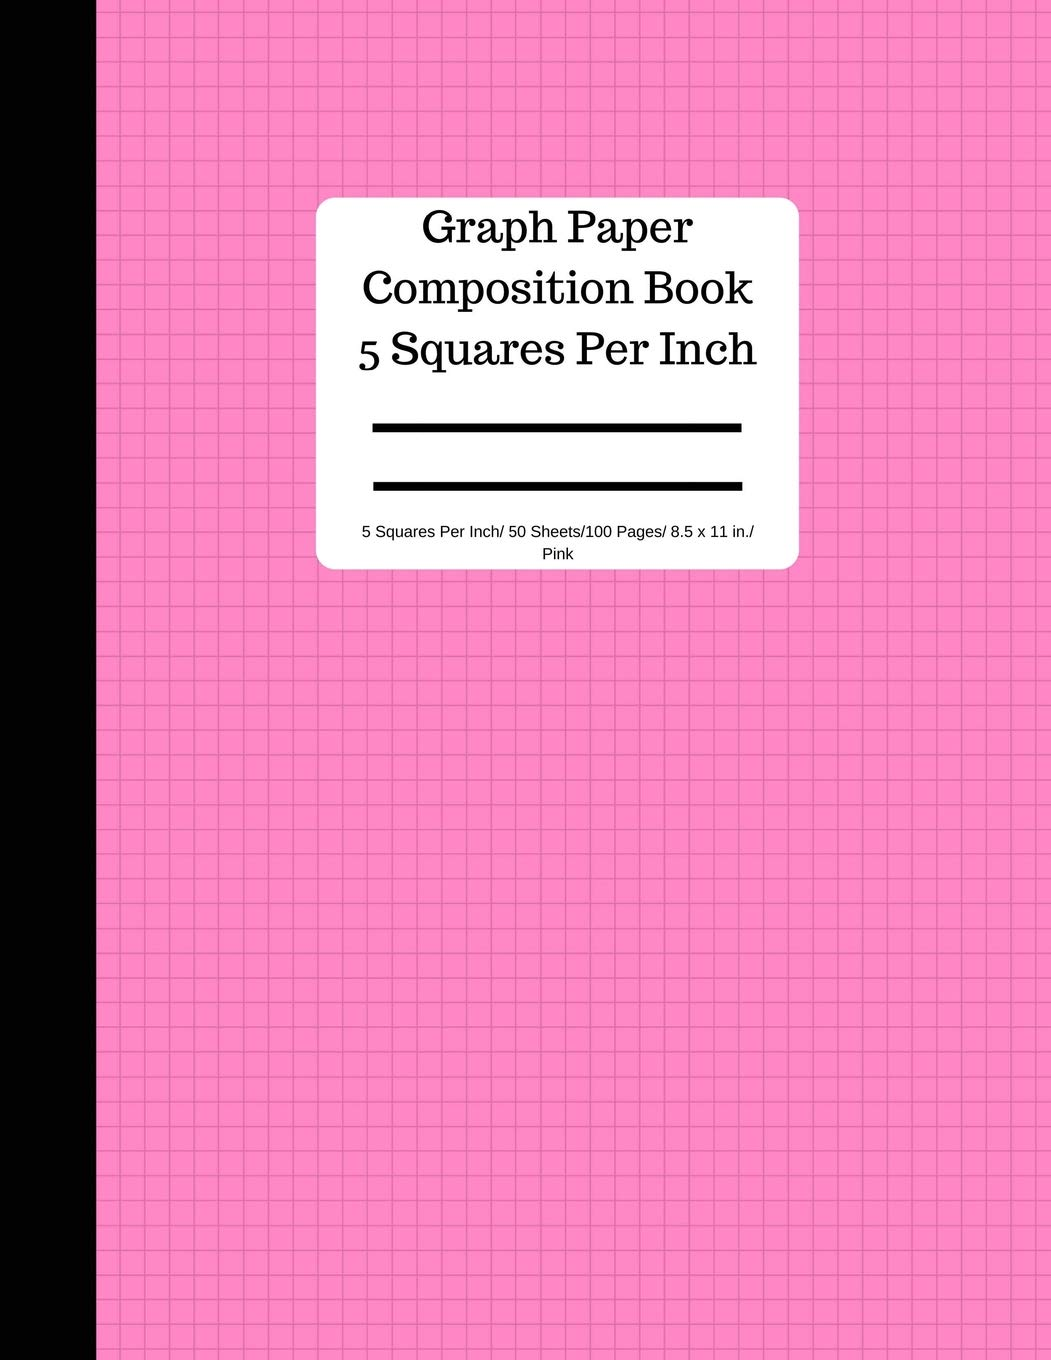 graphic regarding Blank 100 Square Grid Printable named Graph Paper Structure E-book 5 Sq. For every Inch/ 50 Sheets